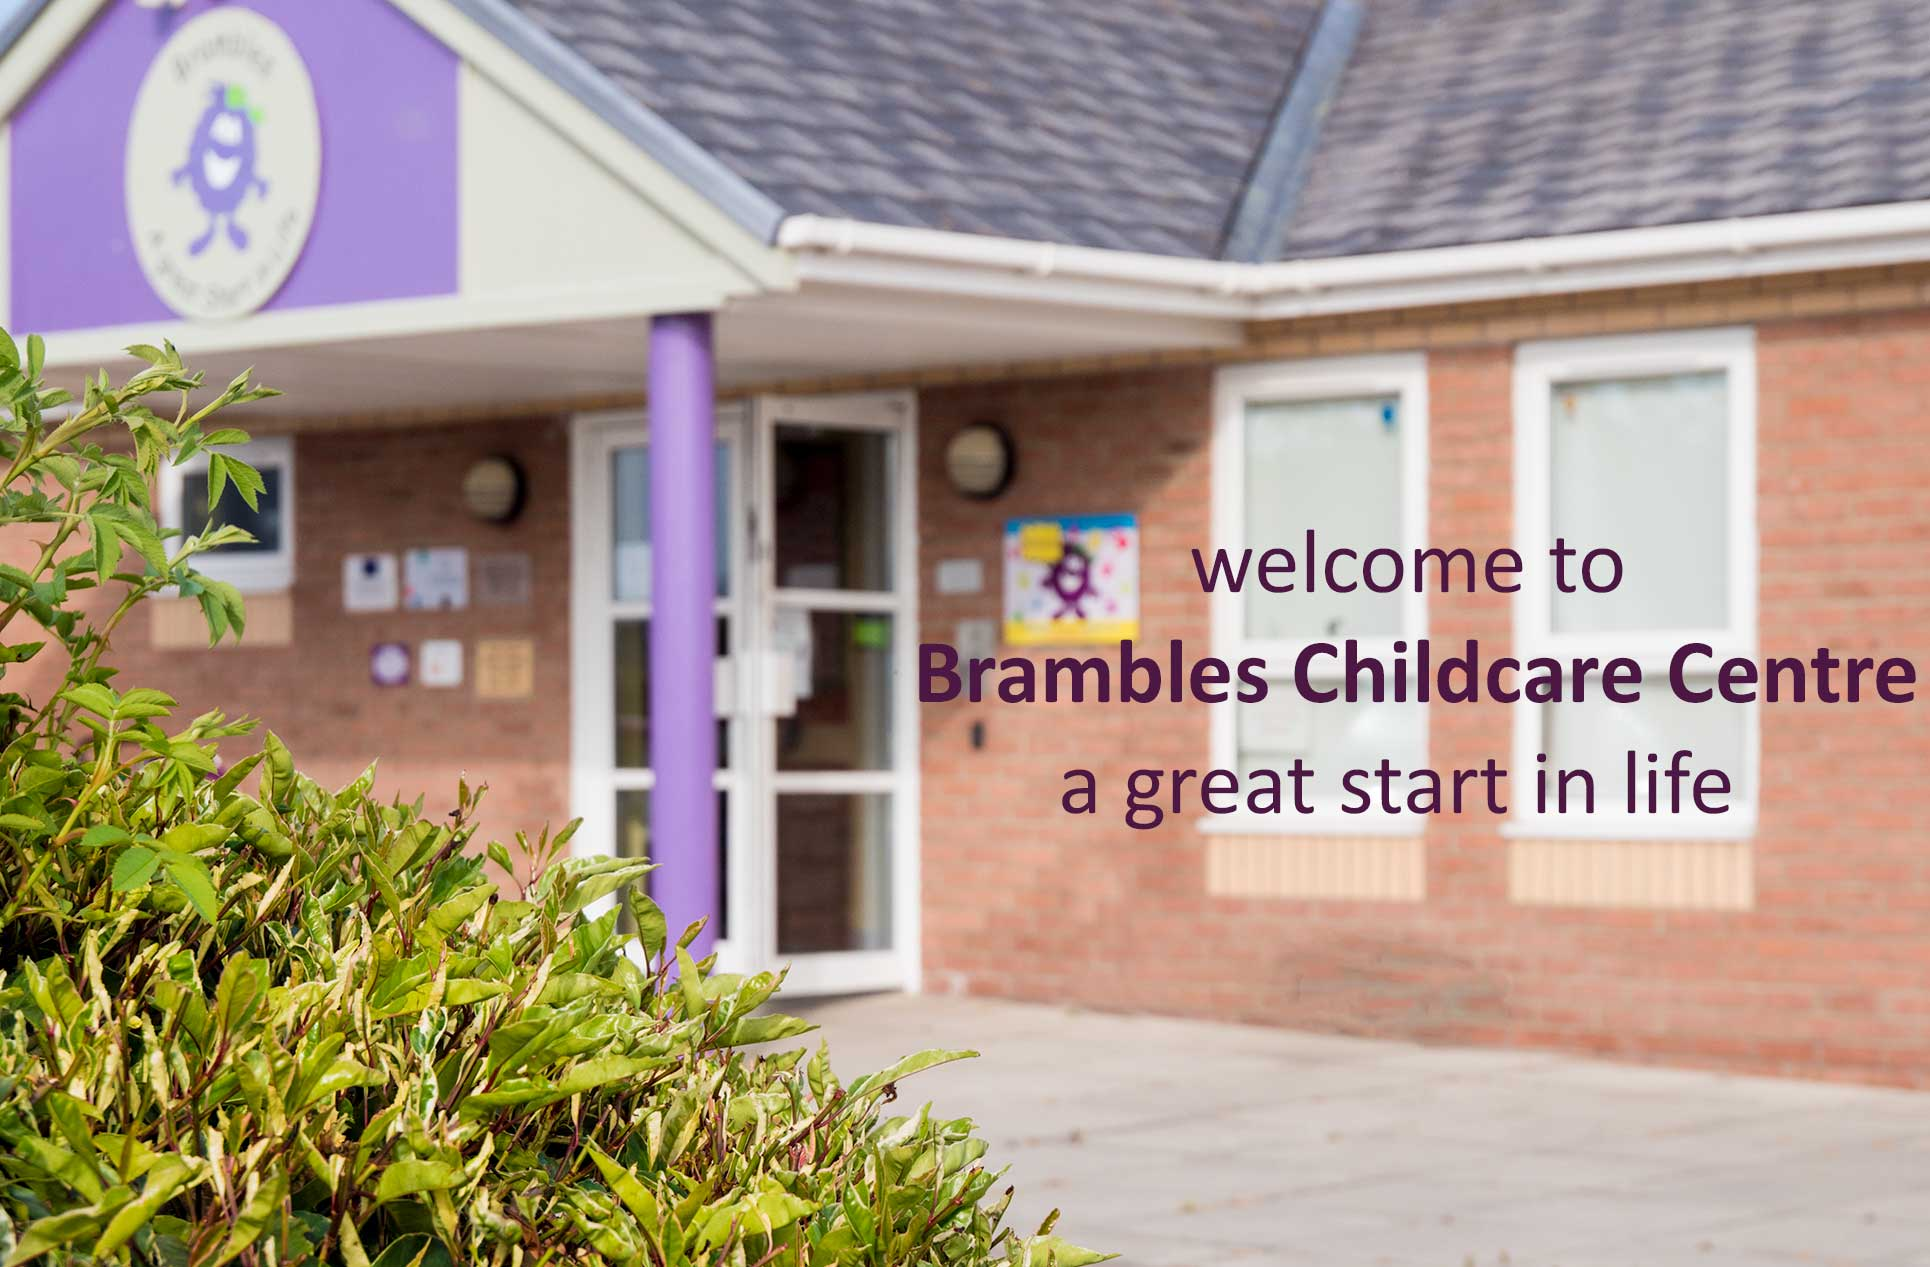 Brambles Childcare - a great start in life